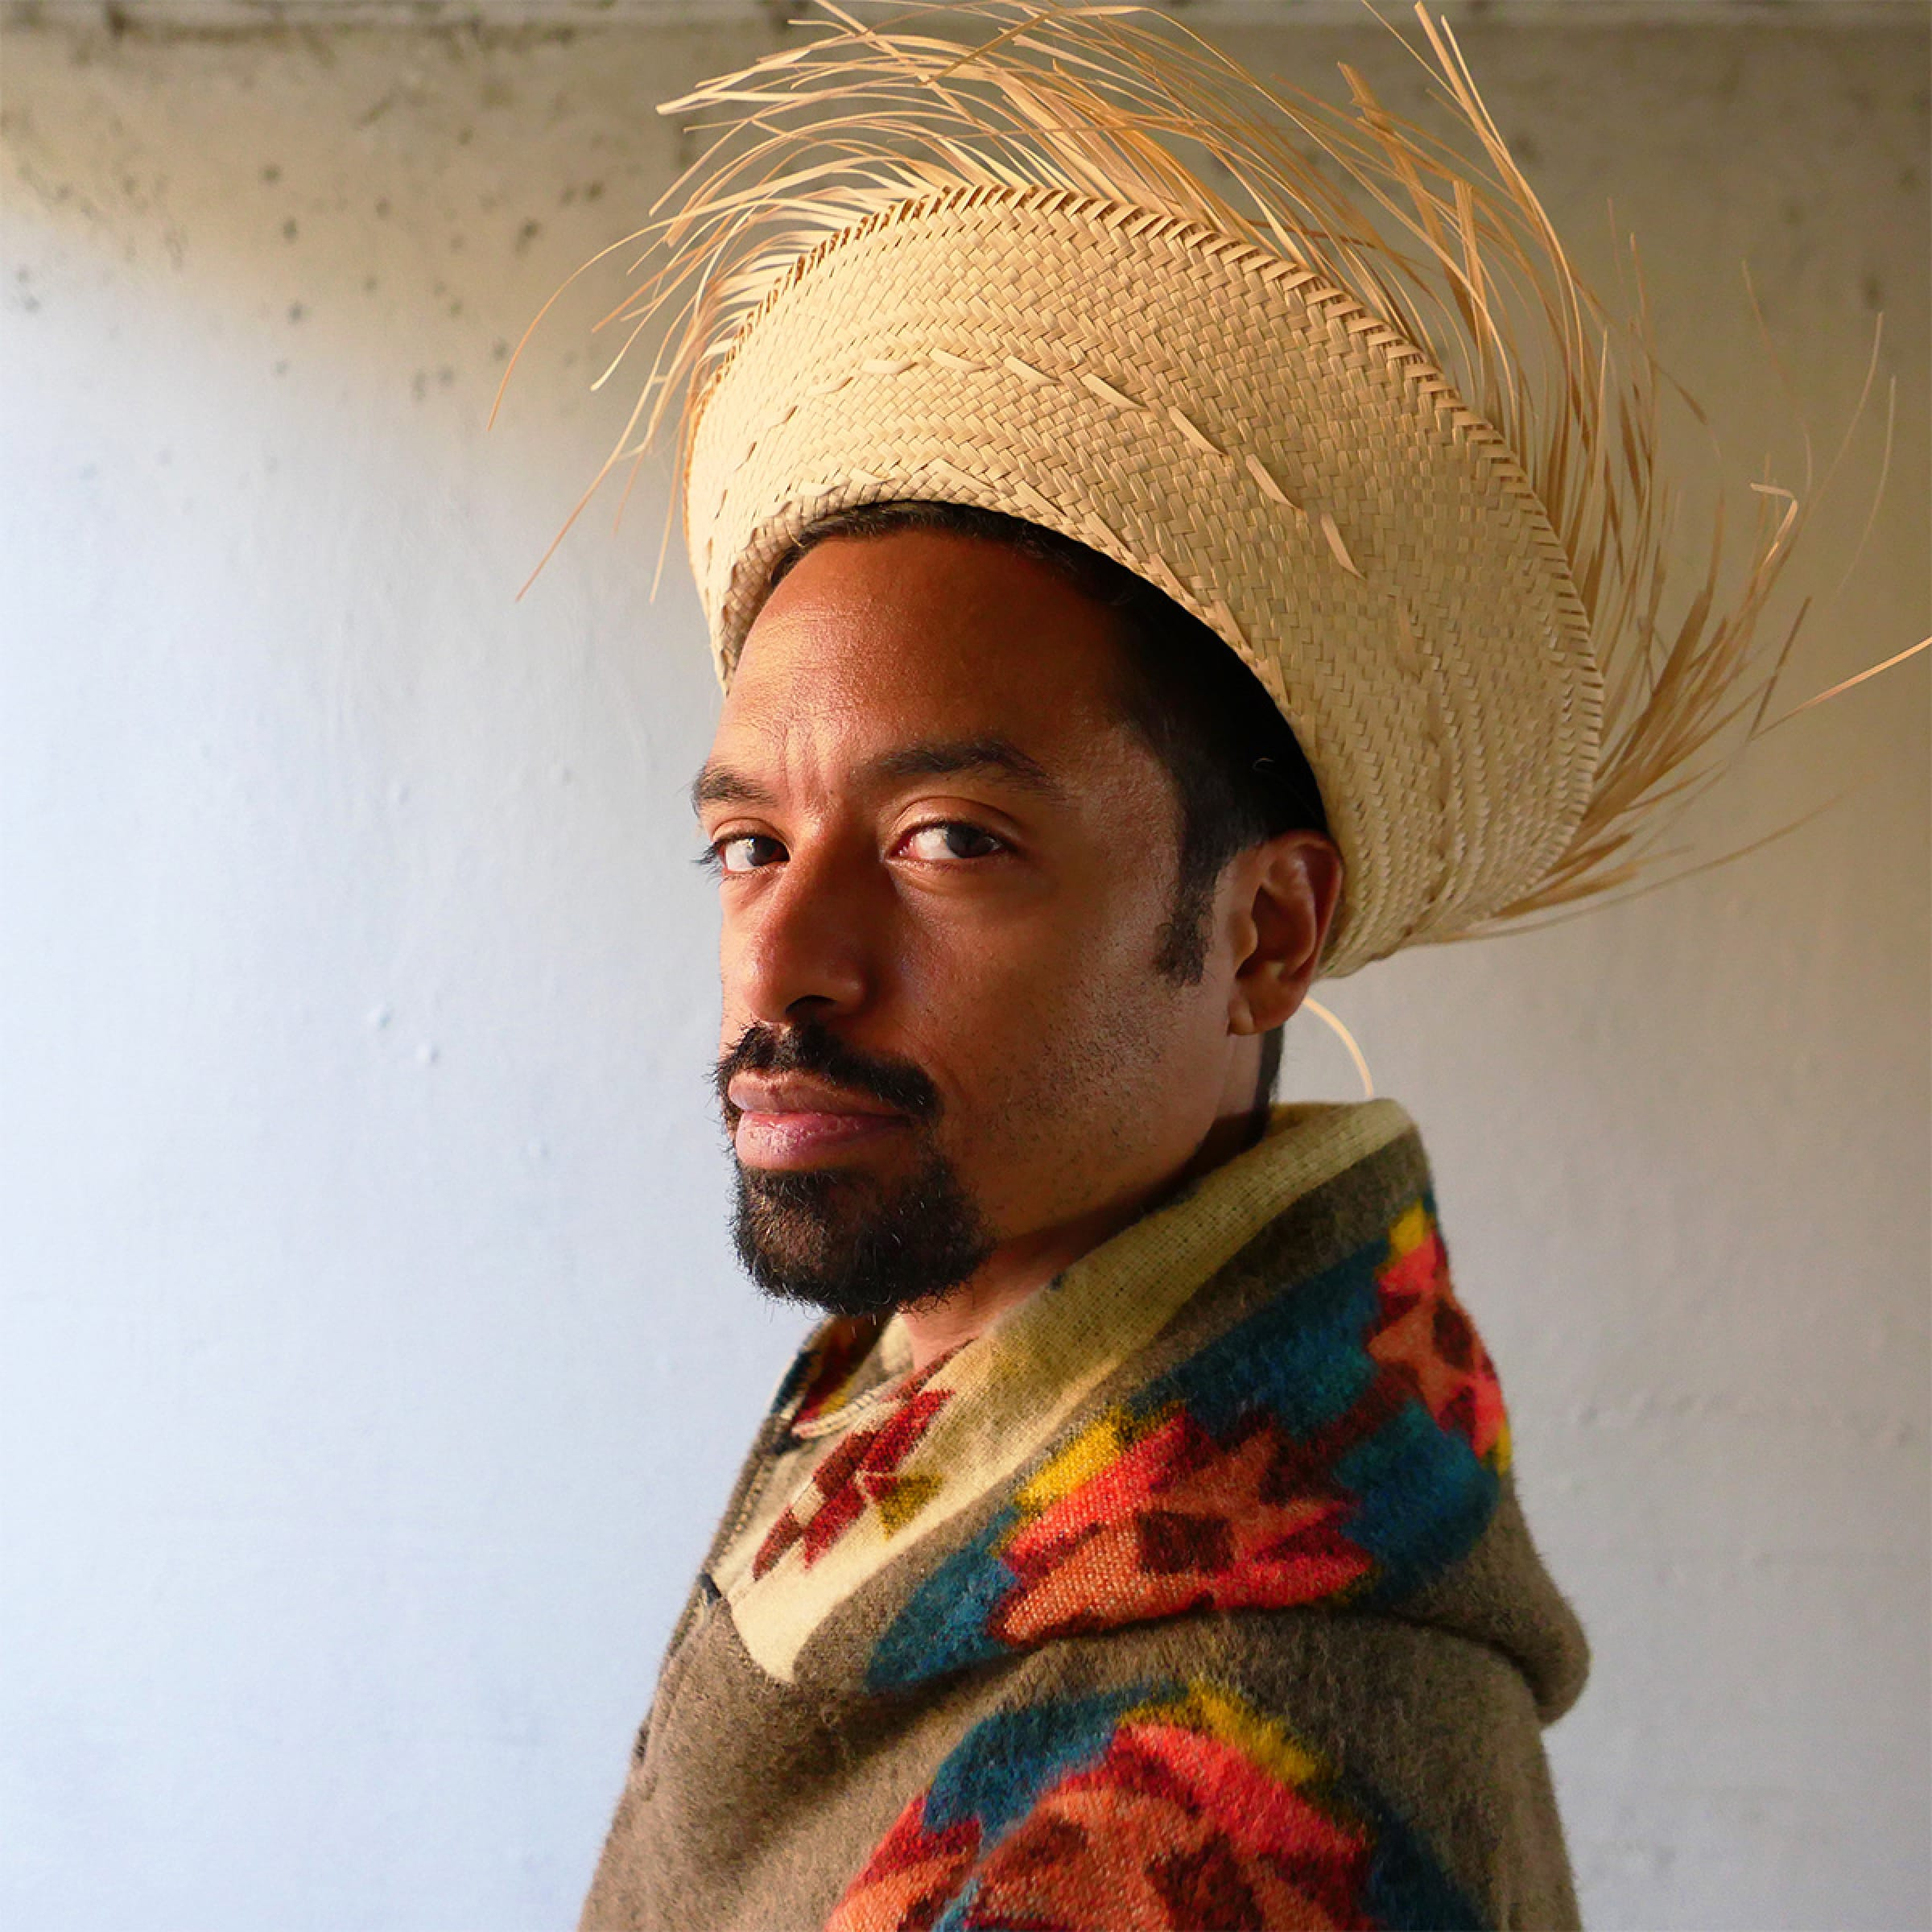 Frankie Reyes turns towards the camera, wearing a large straw hat and a woolly green sweater with a tribal print of orange, blue, yellow, and burgundy.